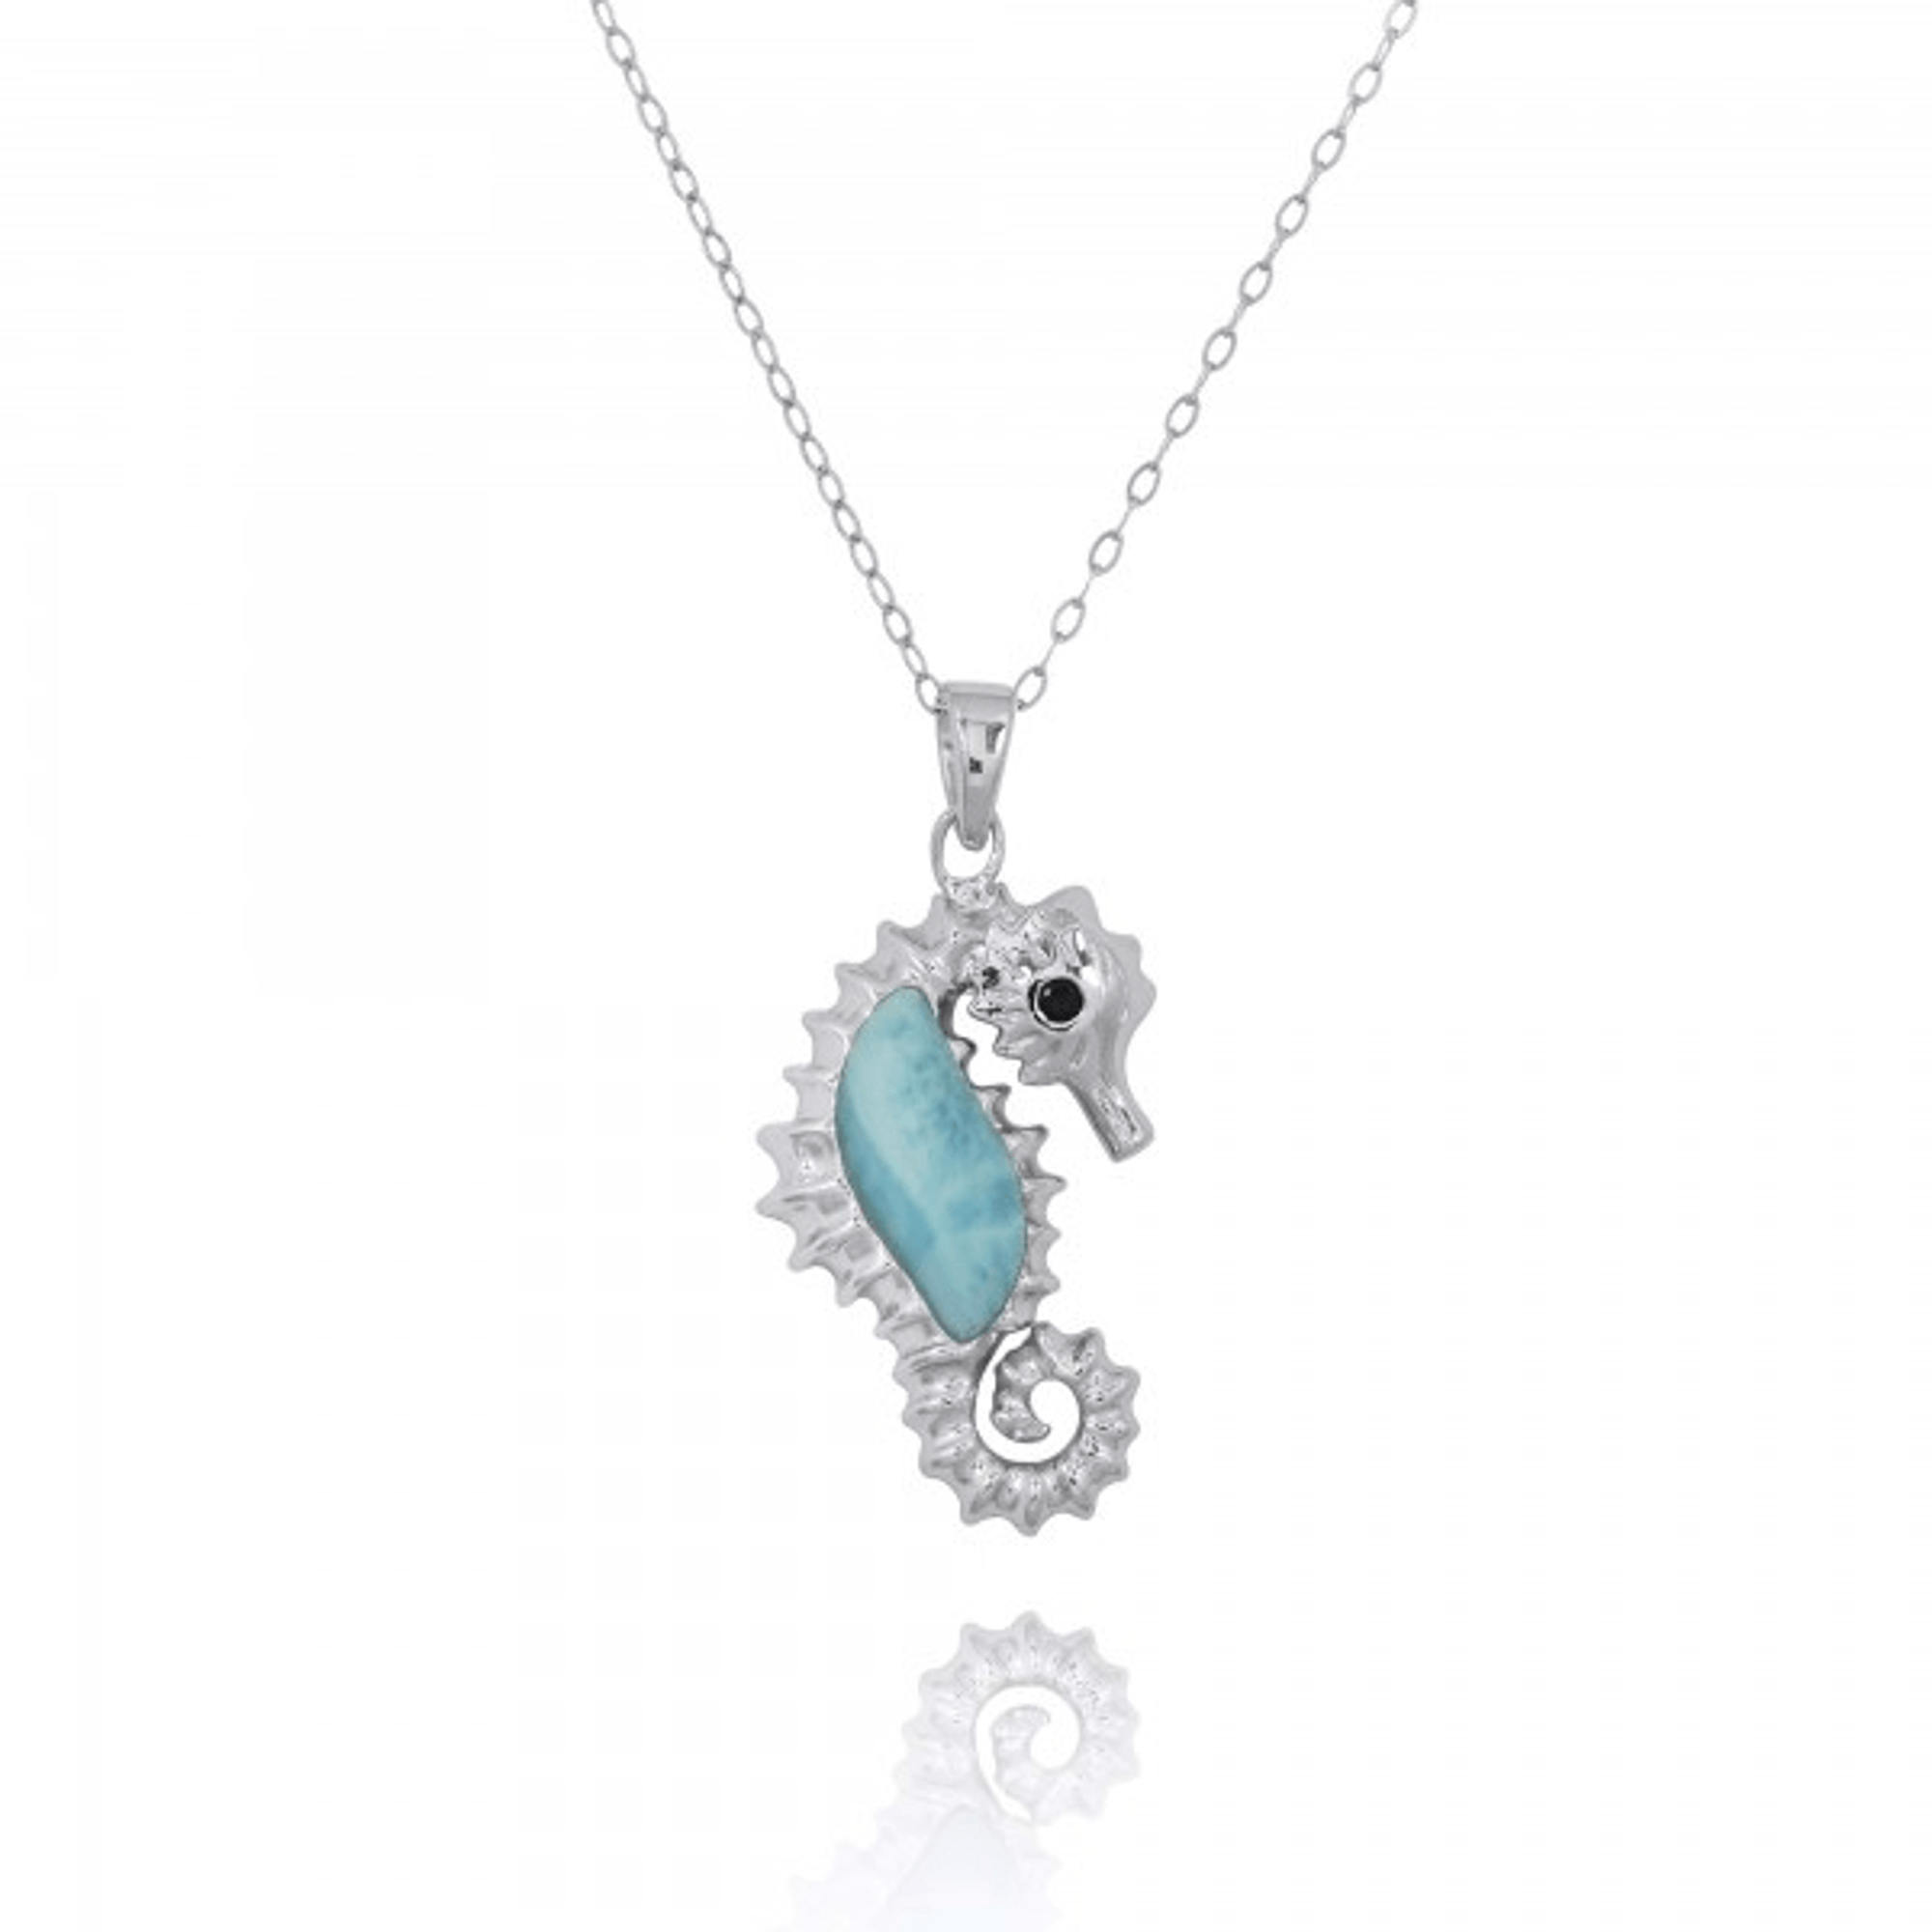 Seahorse sterling silver larimar pendant larimar seahorse necklace seahorse sterling silver larimar pendant necklace beyond silver jewelry np10125 lar 2 aloadofball Image collections